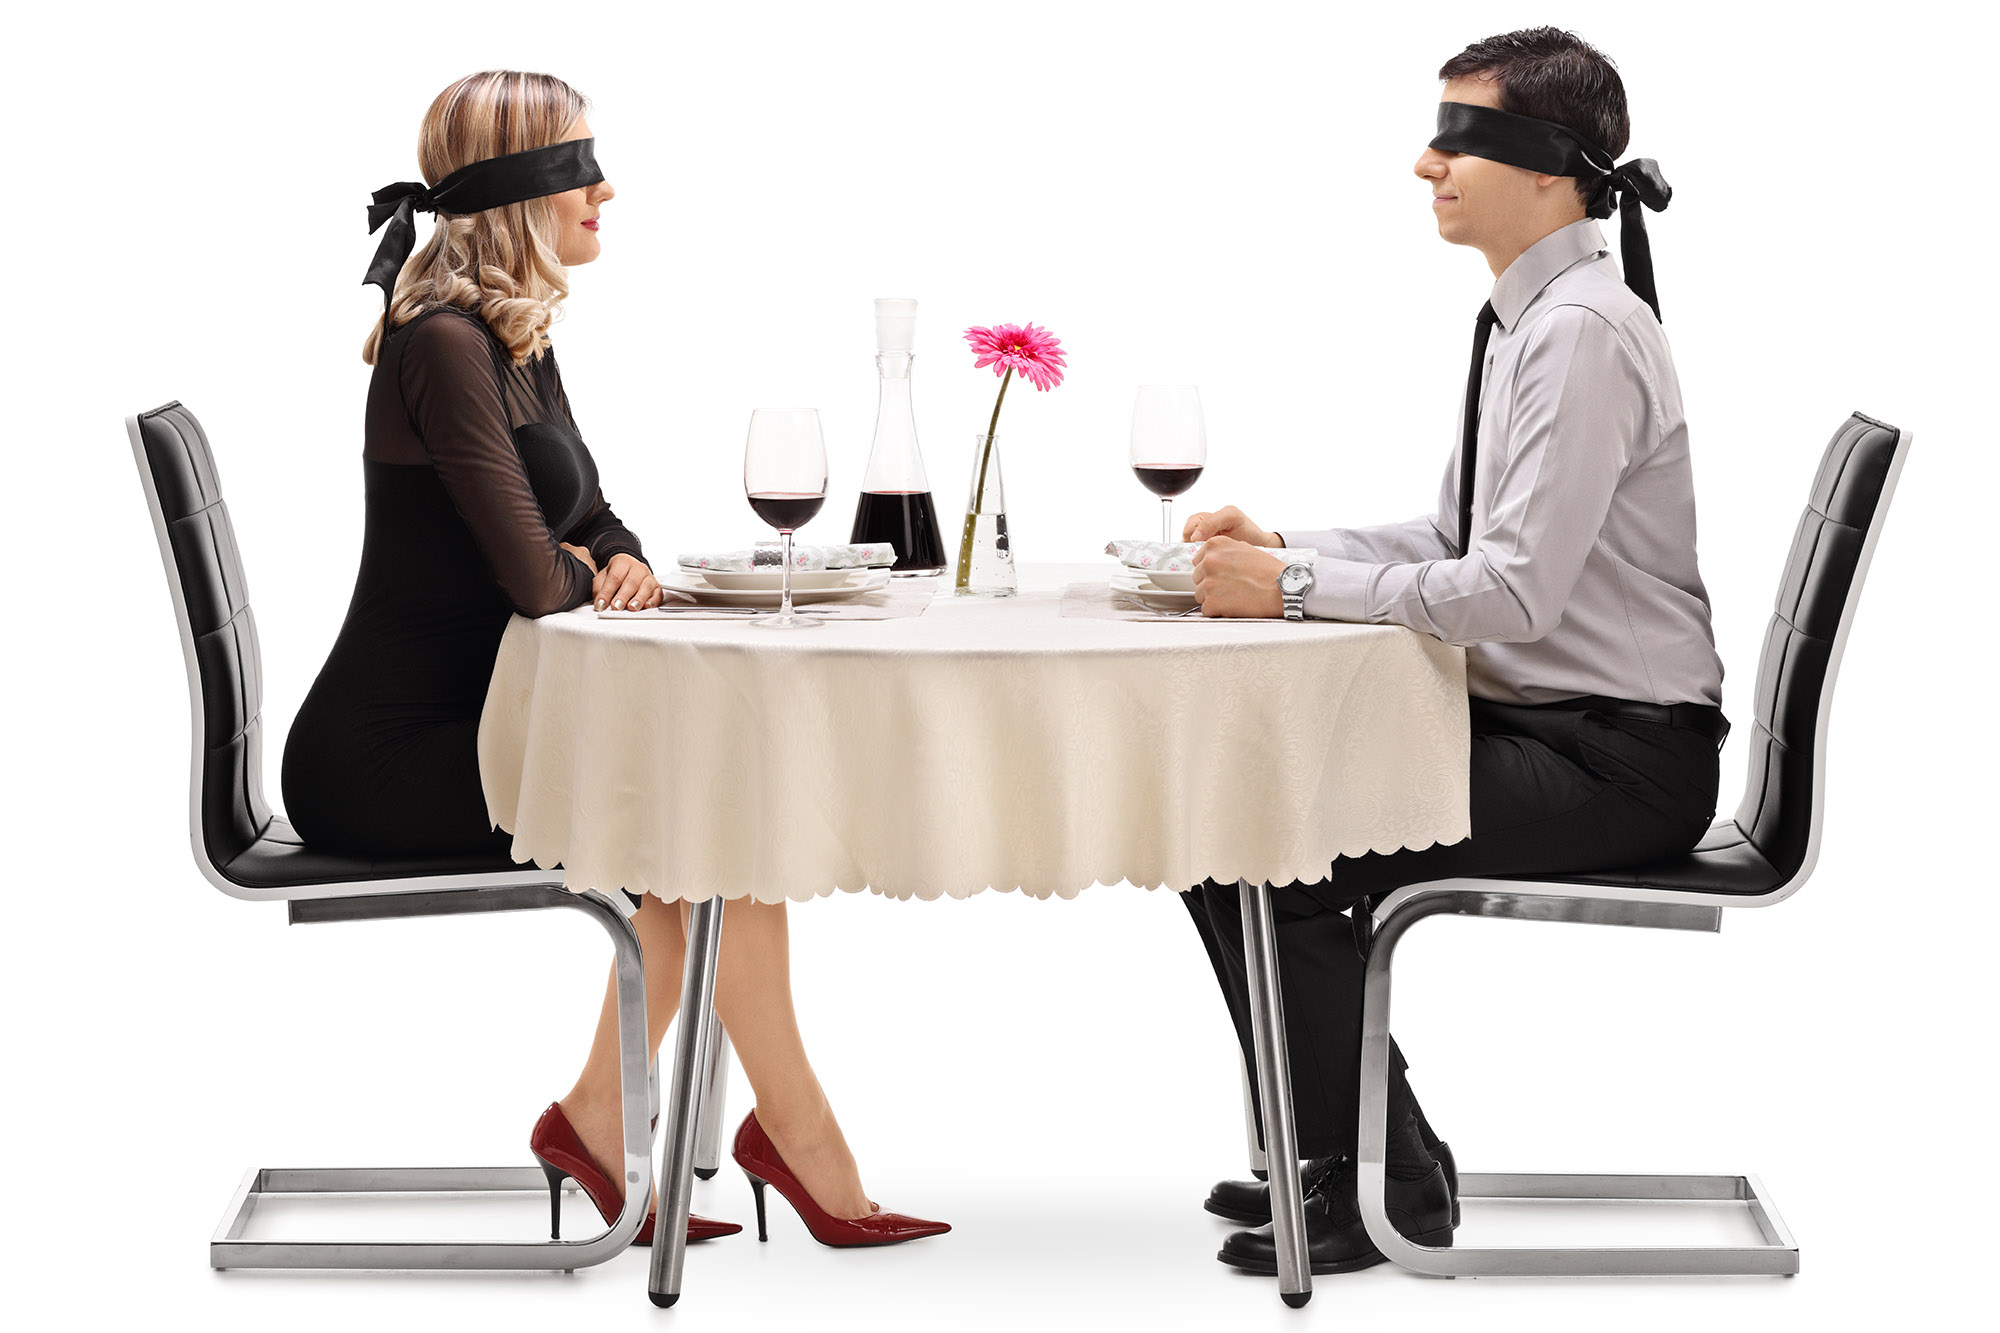 blindfolded couple on date